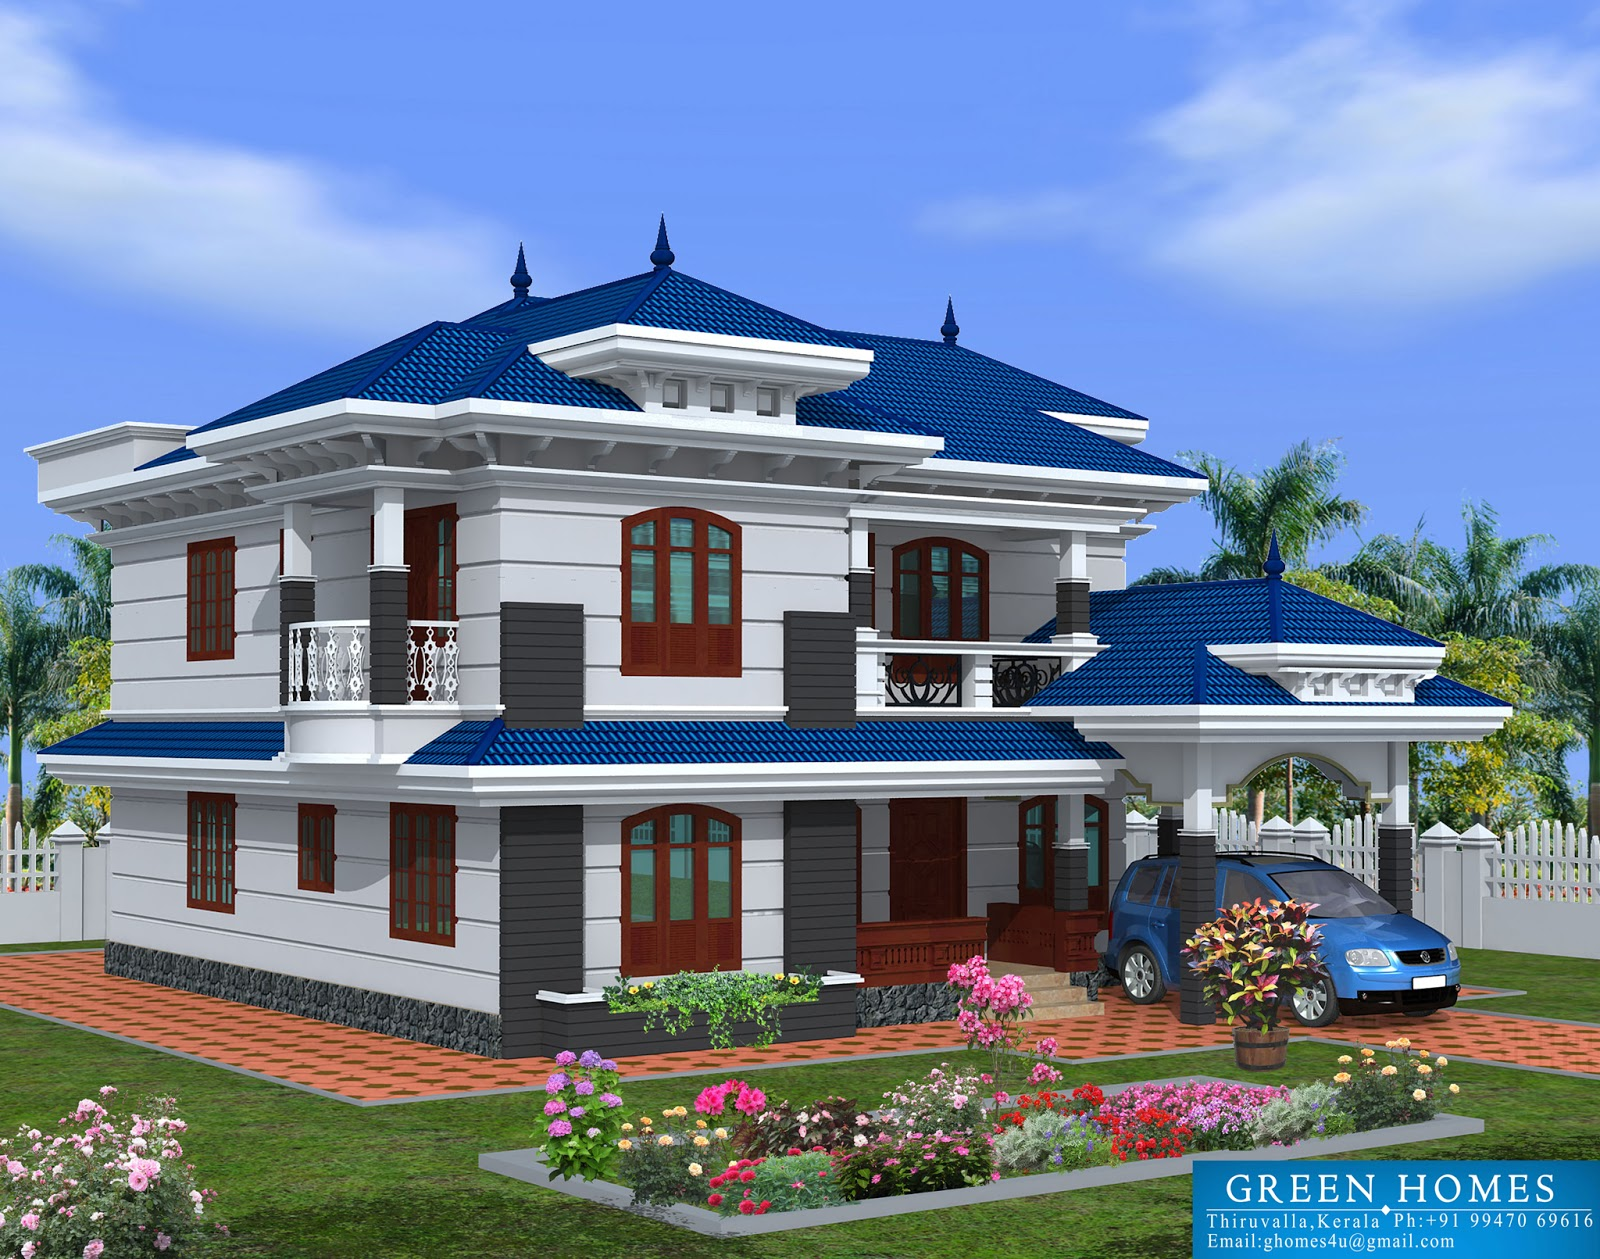 Green homes beautiful kerala home design for Home designs kerala architects